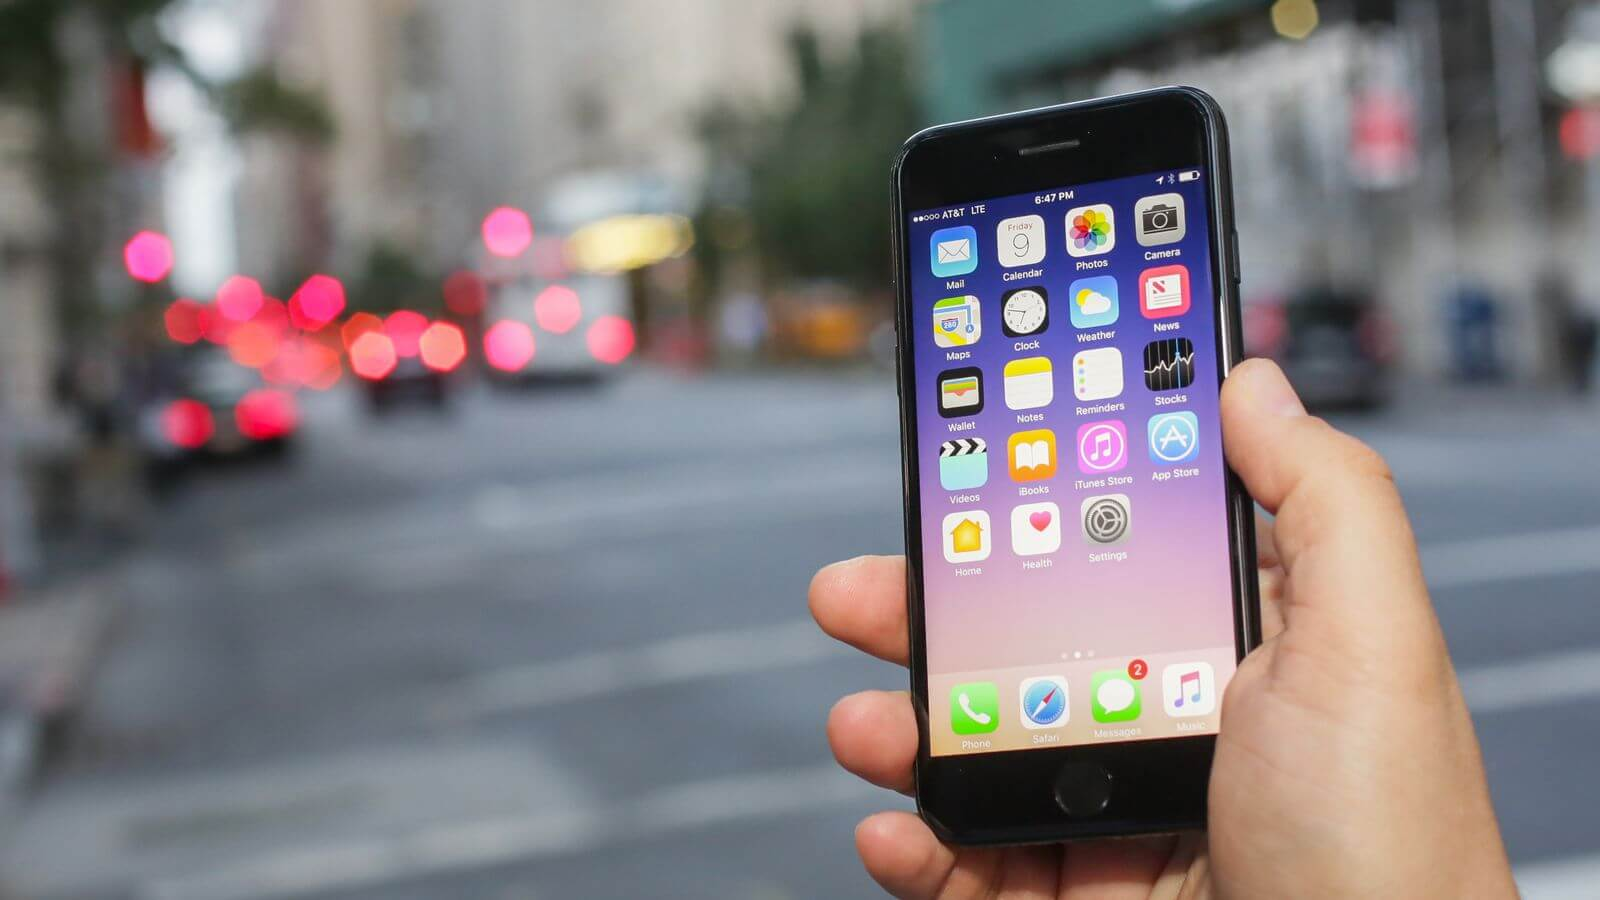 How To Wipe A Stolen Iphone: How To Reset A Stolen Iphone 6: Erase